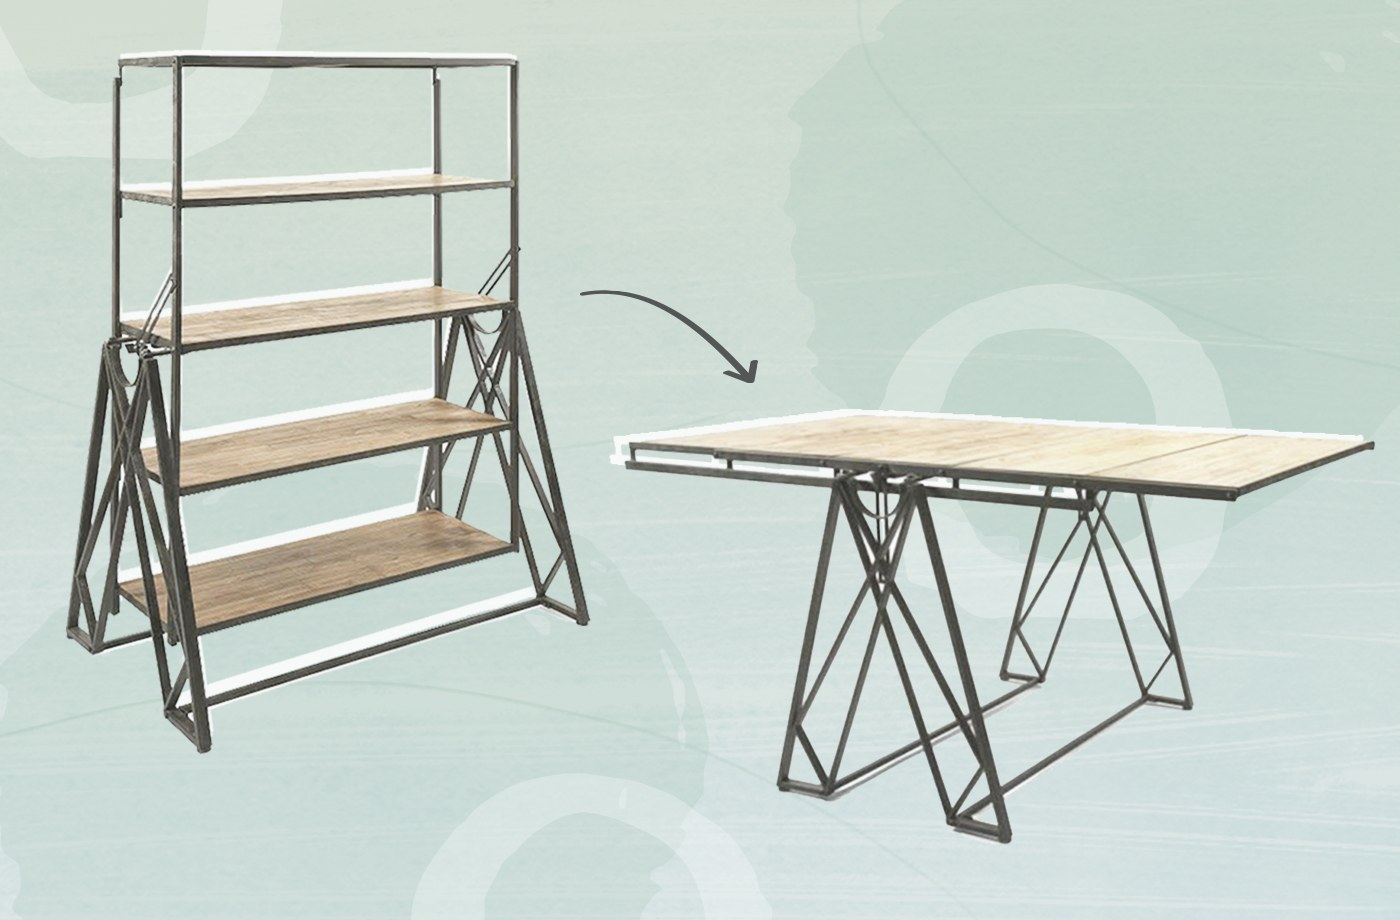 Thumbnail For This Bookcase That Converts To A Dining Table Is The Most Genius Thing